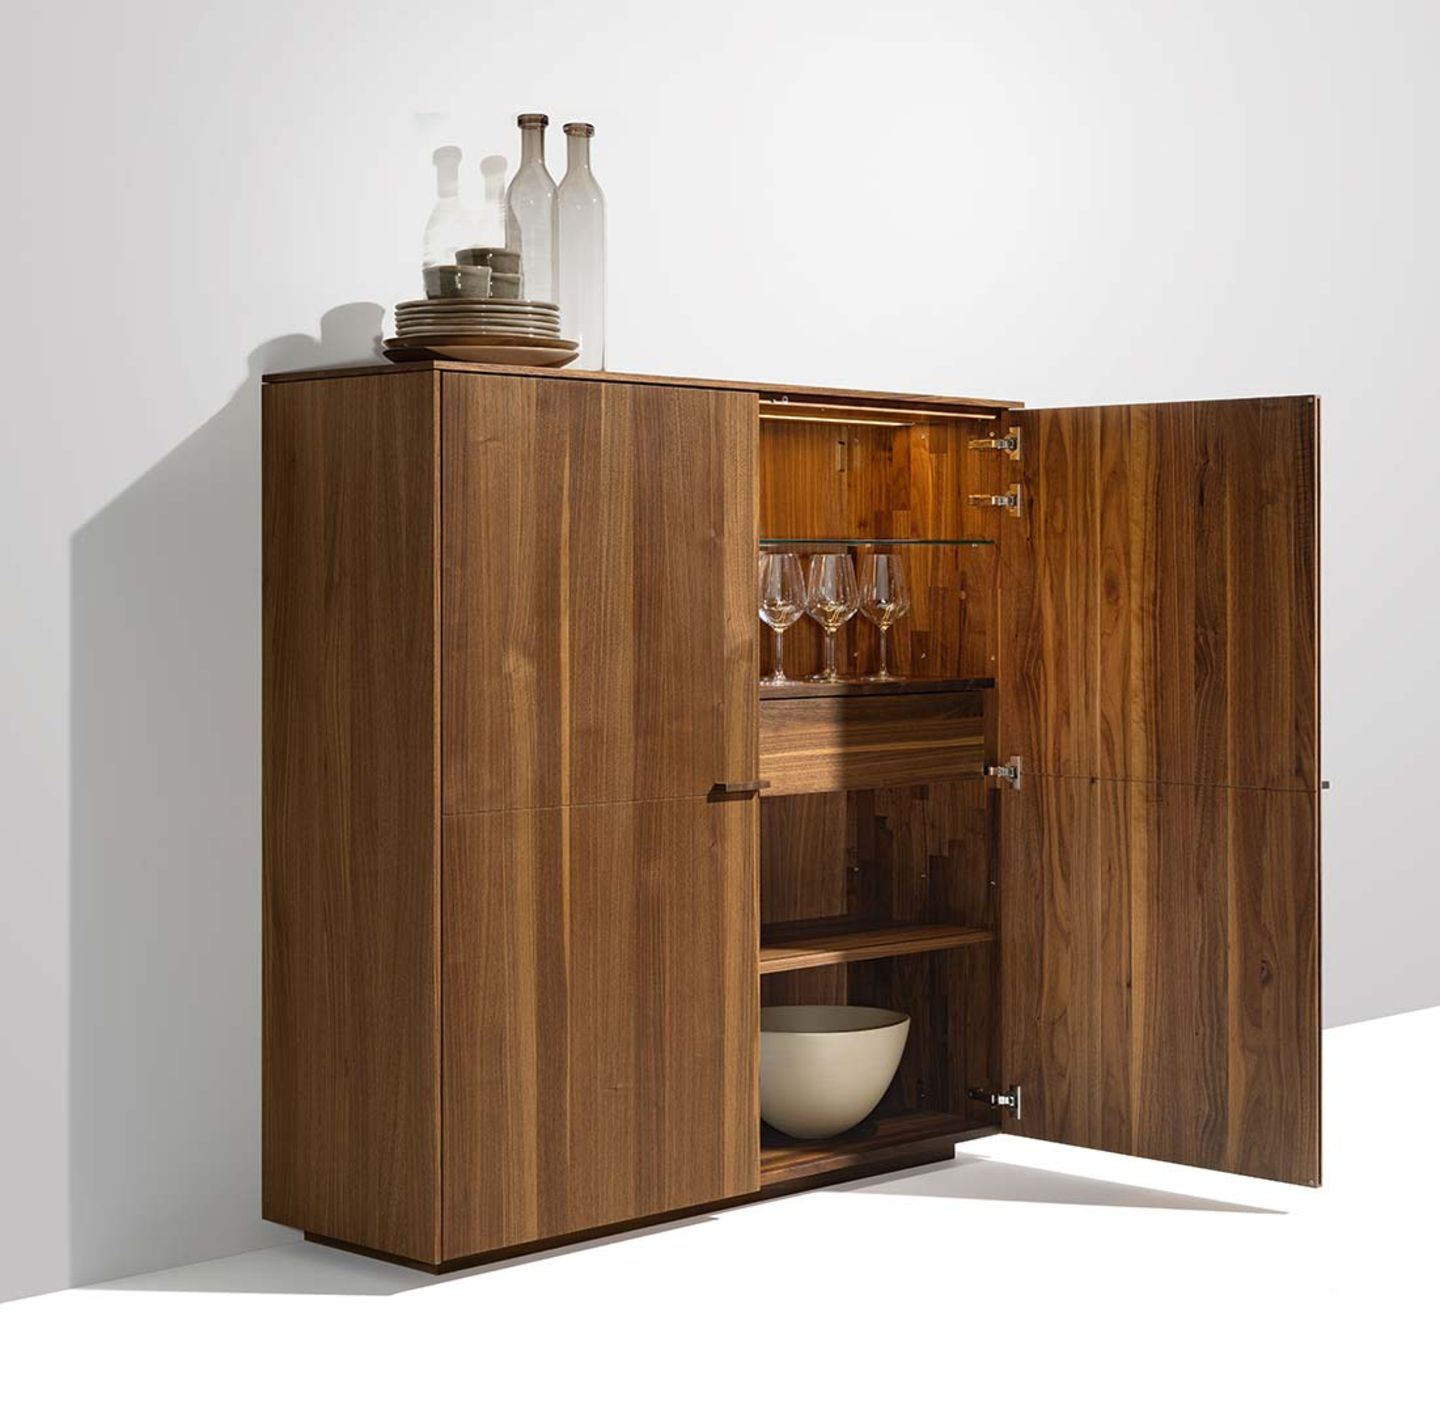 filigno highboard with wooden fronts with a horizontal or vertical grain